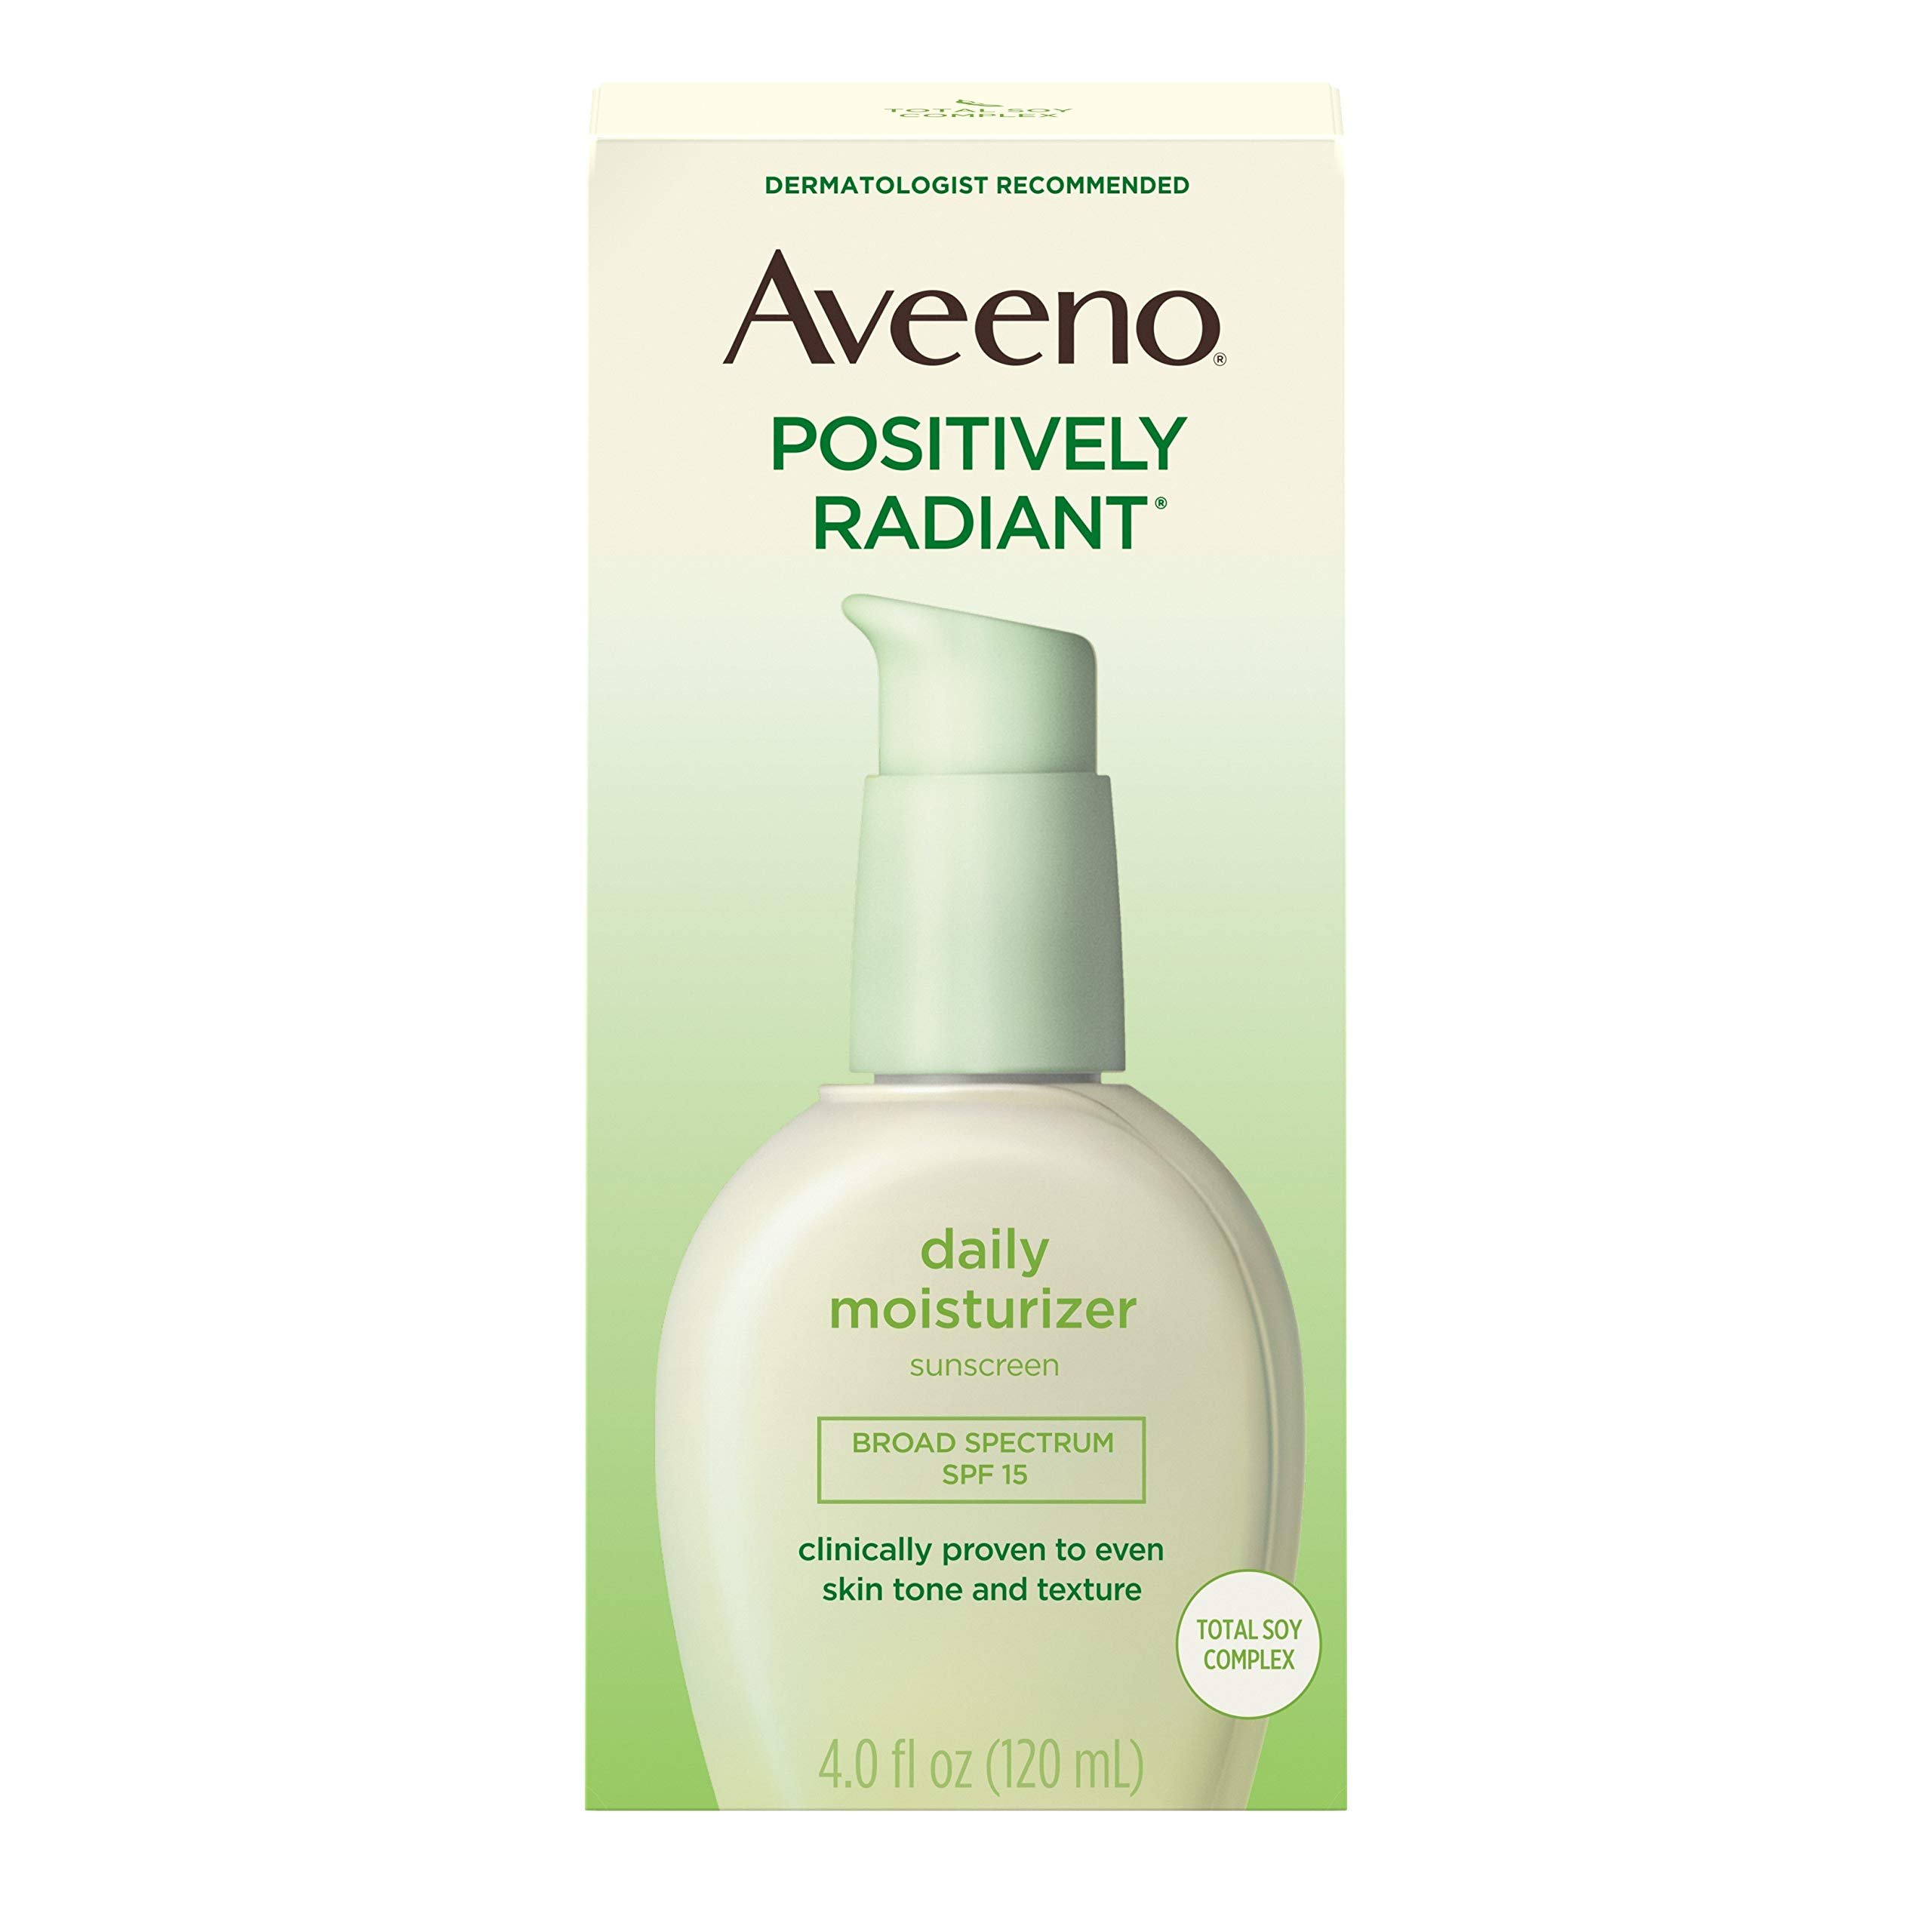 Aveeno Positively Radiant Daily Face Moisturizer with Broad Spectrum SPF 15 Sunscreen and Soy Extract, 4 fl. oz by Aveeno